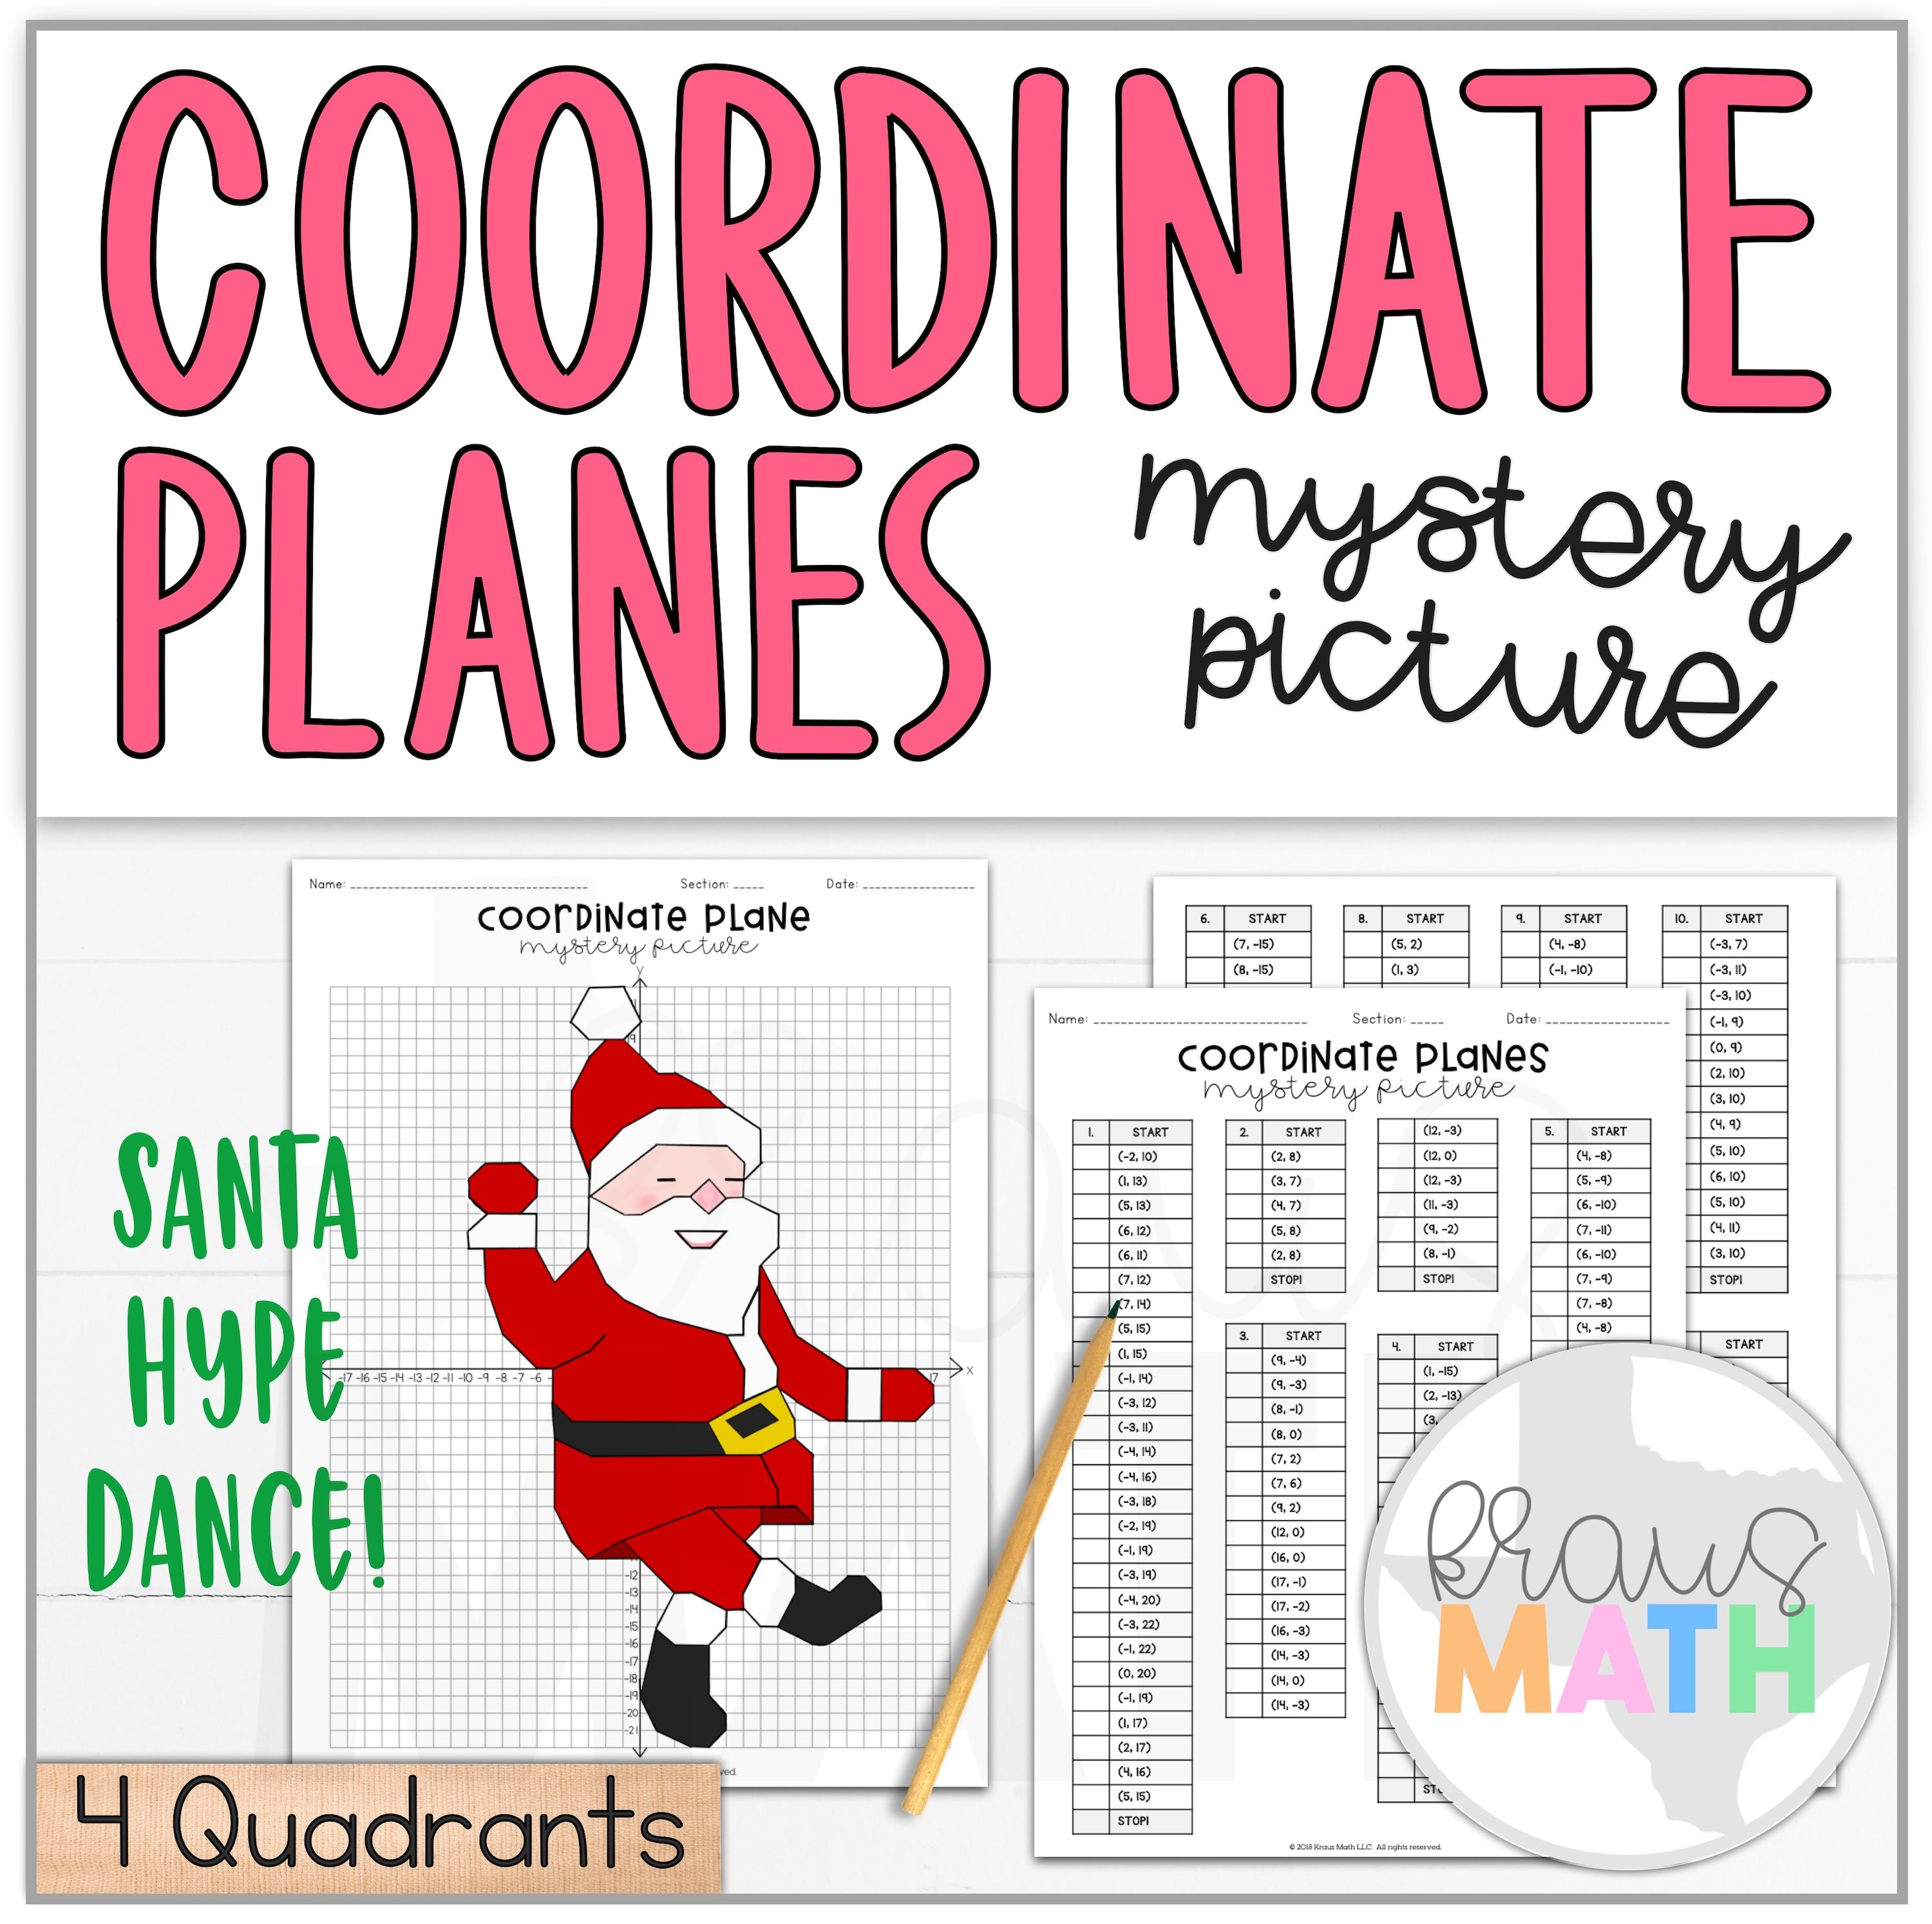 Santa Hype Dance Coordinate Plane Activity 4 Quadrants